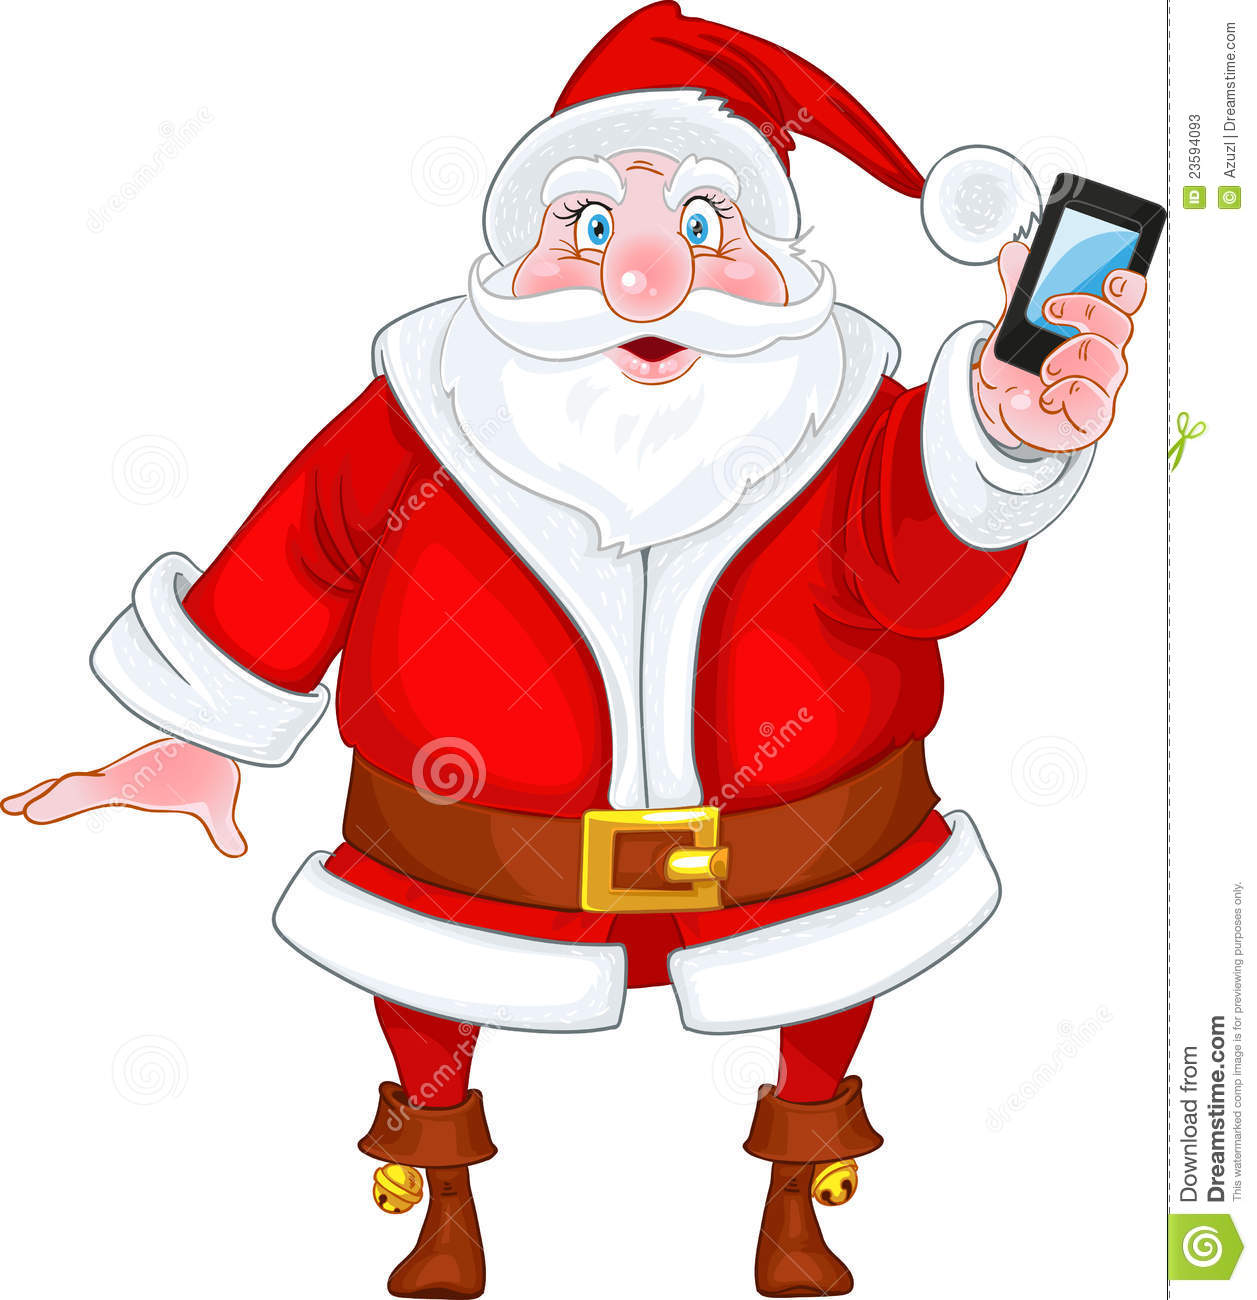 santa claus with a smart phone